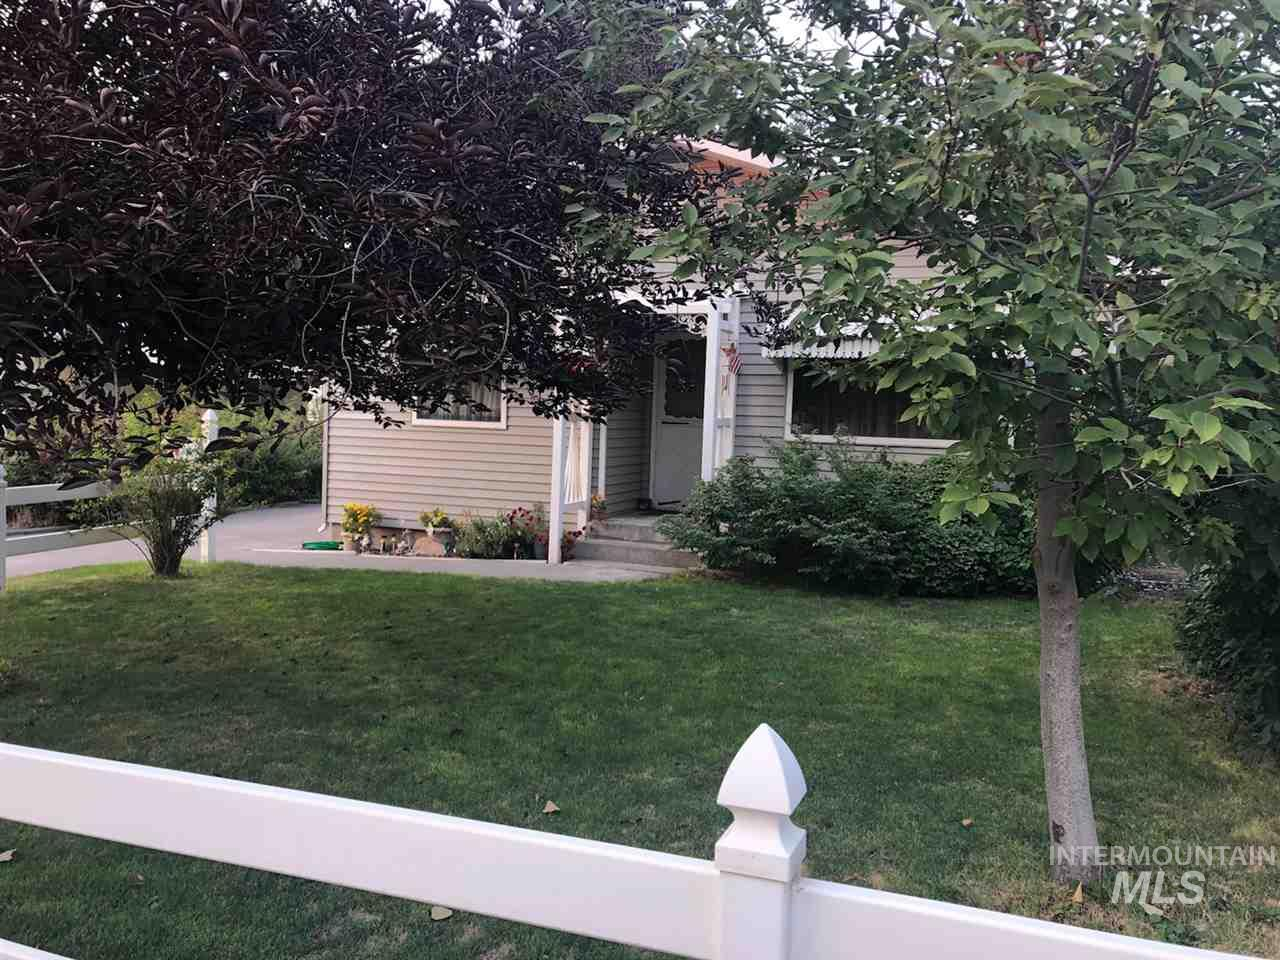 820 N 11th Ave, Buhl, Idaho 83316, 2 Bedrooms Bedrooms, ,2 BathroomsBathrooms,Residential,For Sale,820 N 11th Ave,98704201